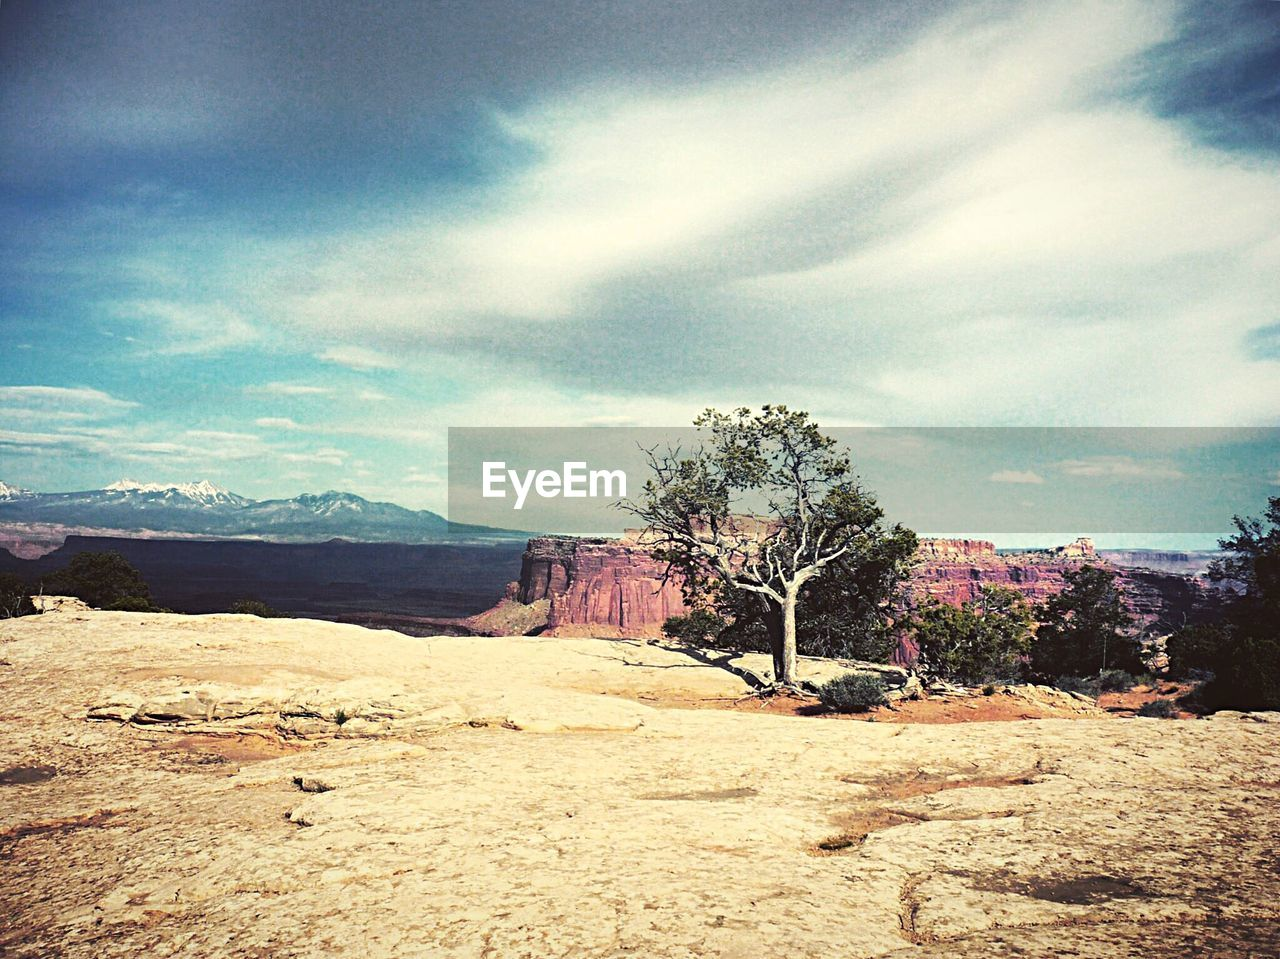 sky, tree, landscape, rock - object, nature, tranquility, tranquil scene, cloud - sky, day, beauty in nature, scenics, no people, outdoors, bare tree, mountain